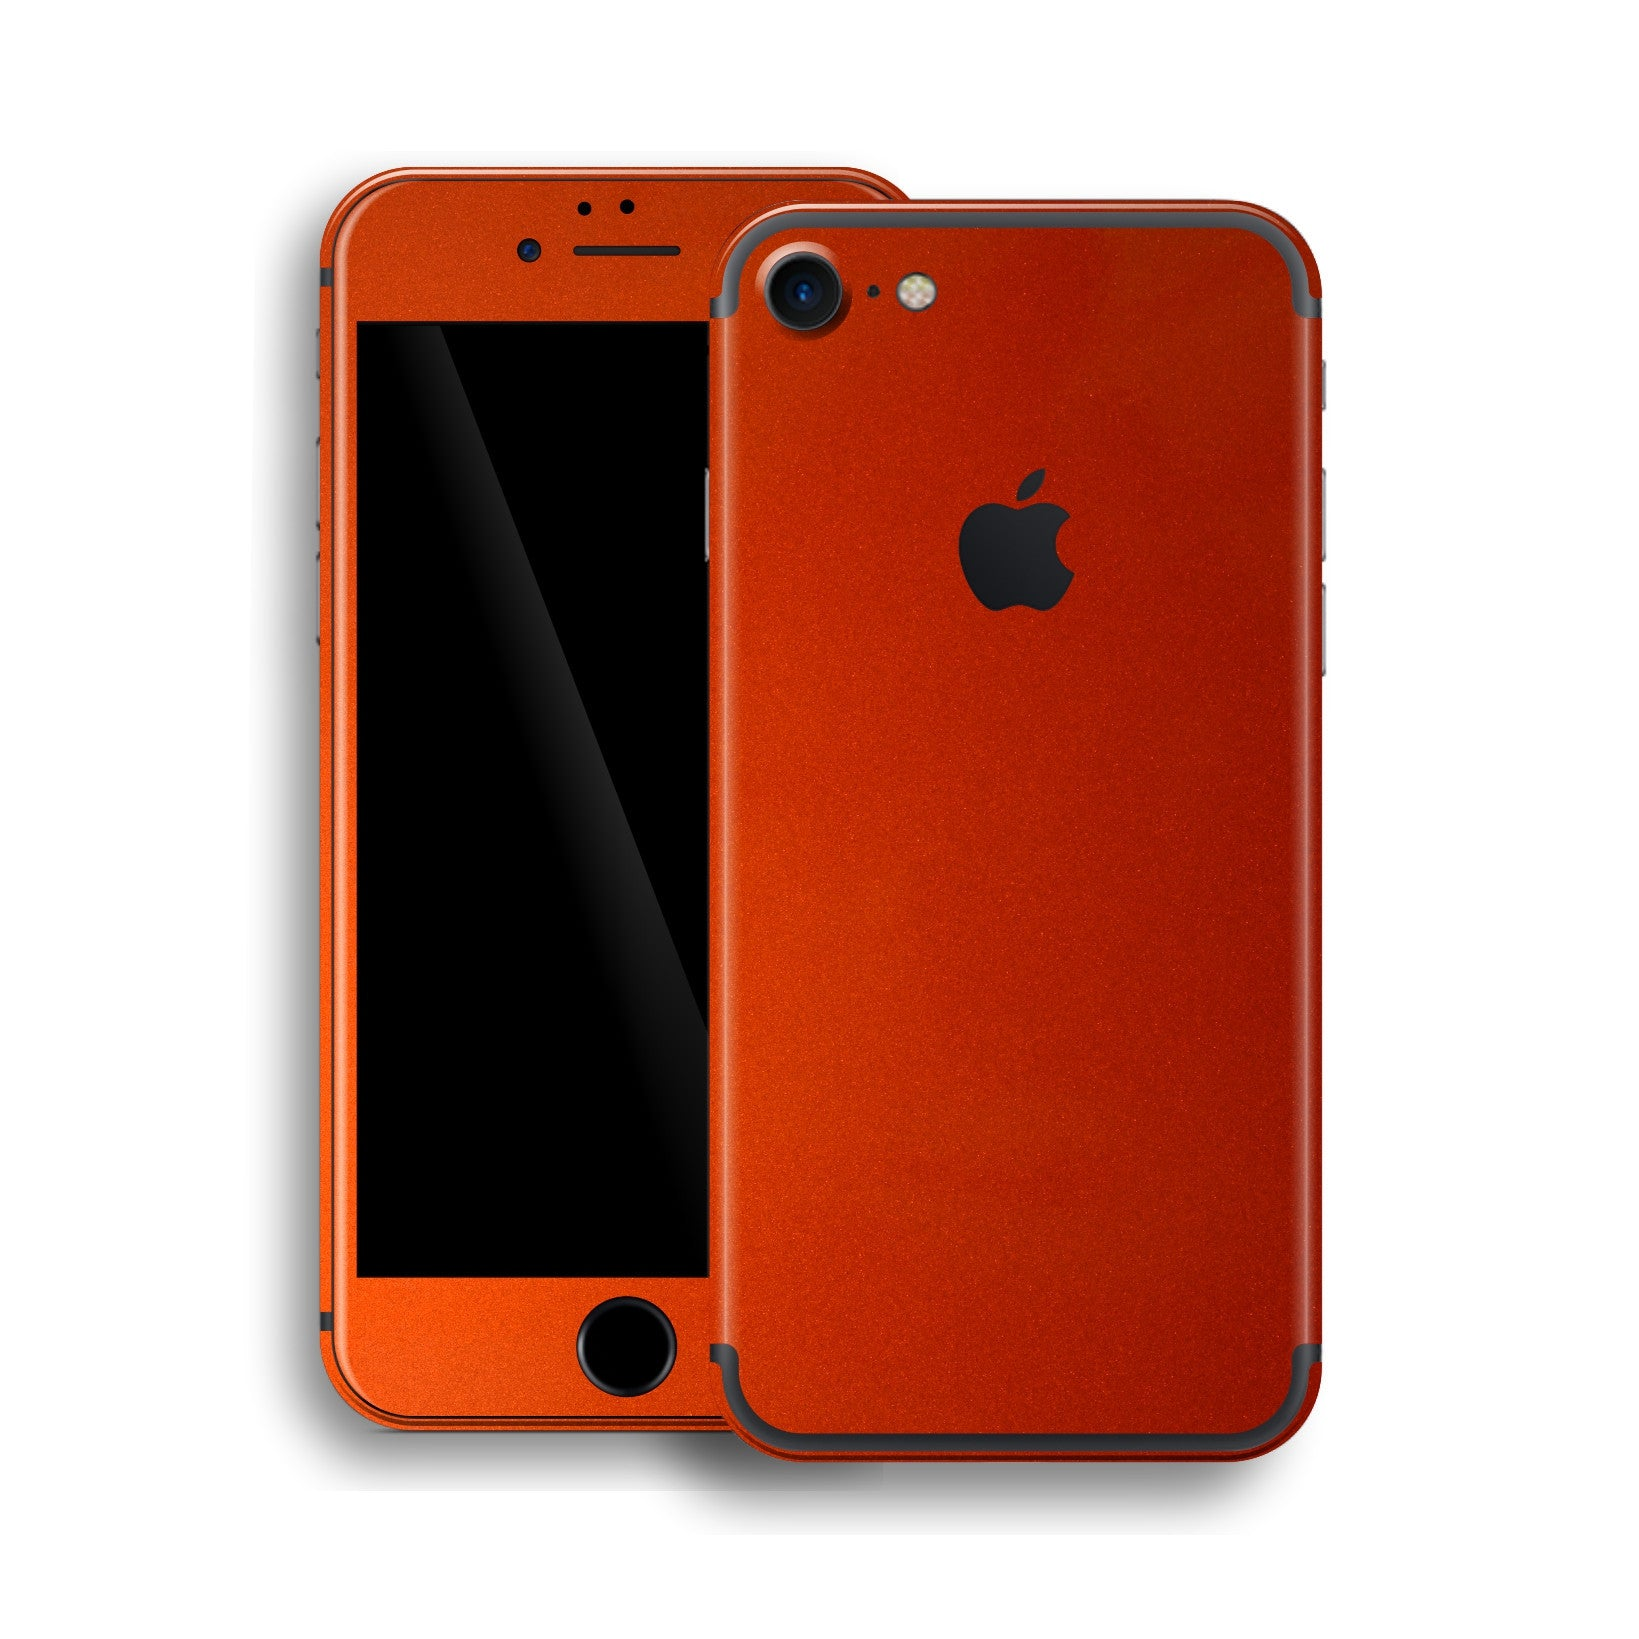 iPhone 7 Fiery Orange Tuning Metallic Skin, Wrap, Decal, Protector, Cover by EasySkinz | EasySkinz.com